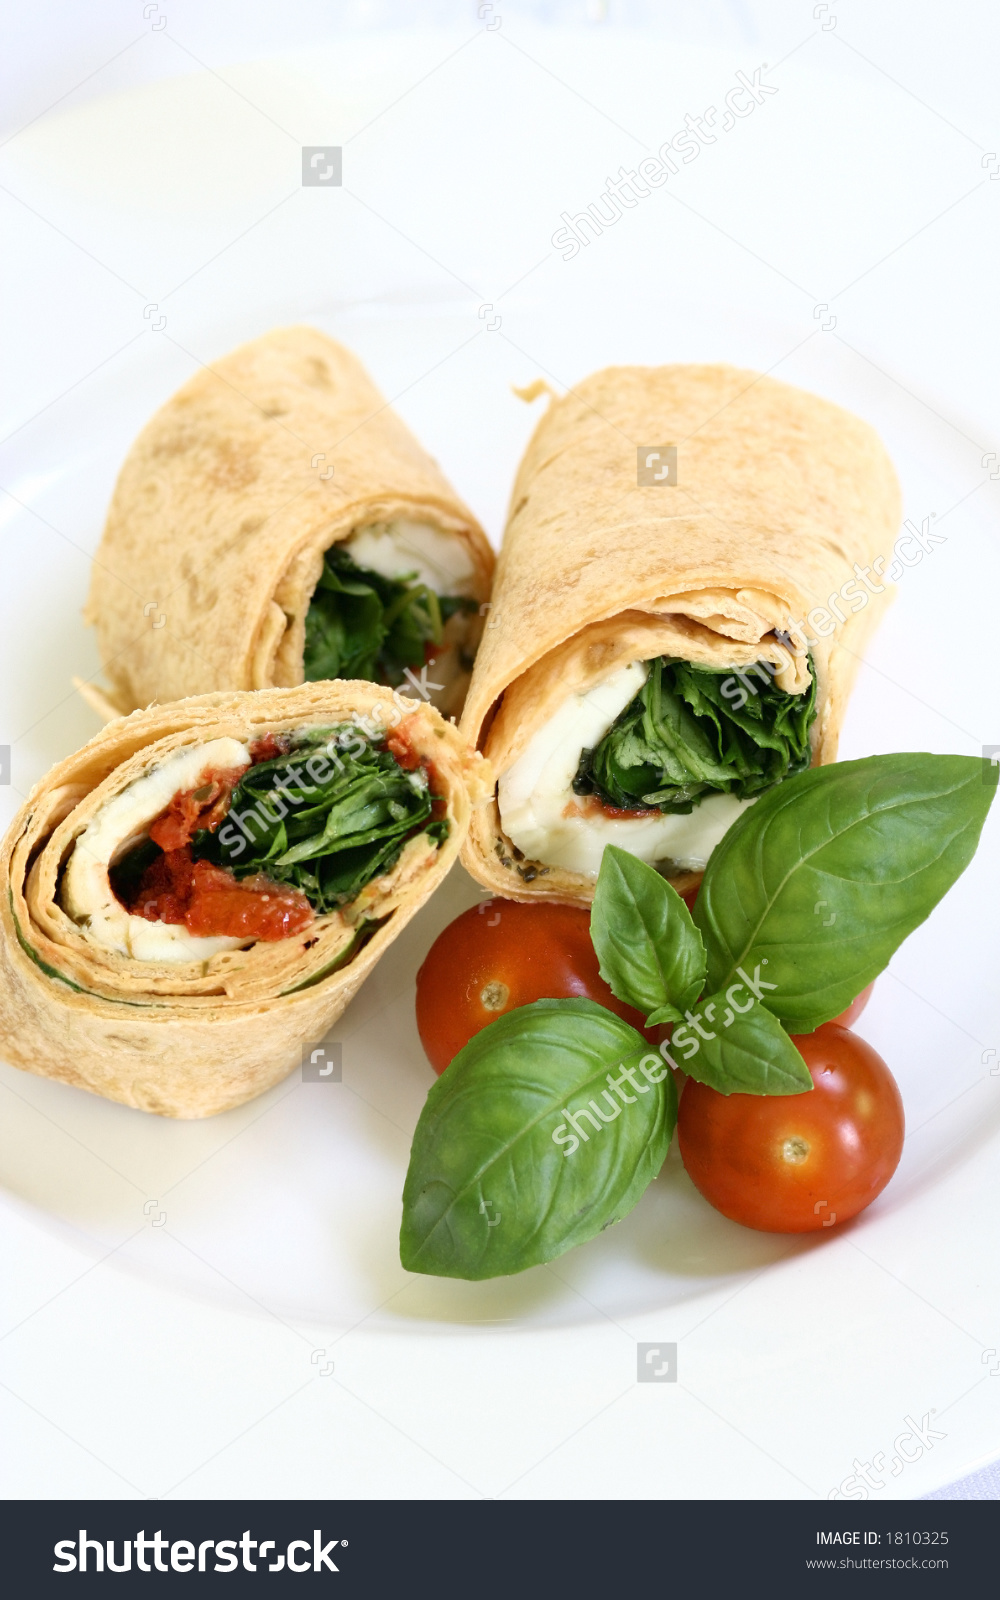 A Plate Of Mozzarella And Spinach Tortilla Wrap Sandwich With.